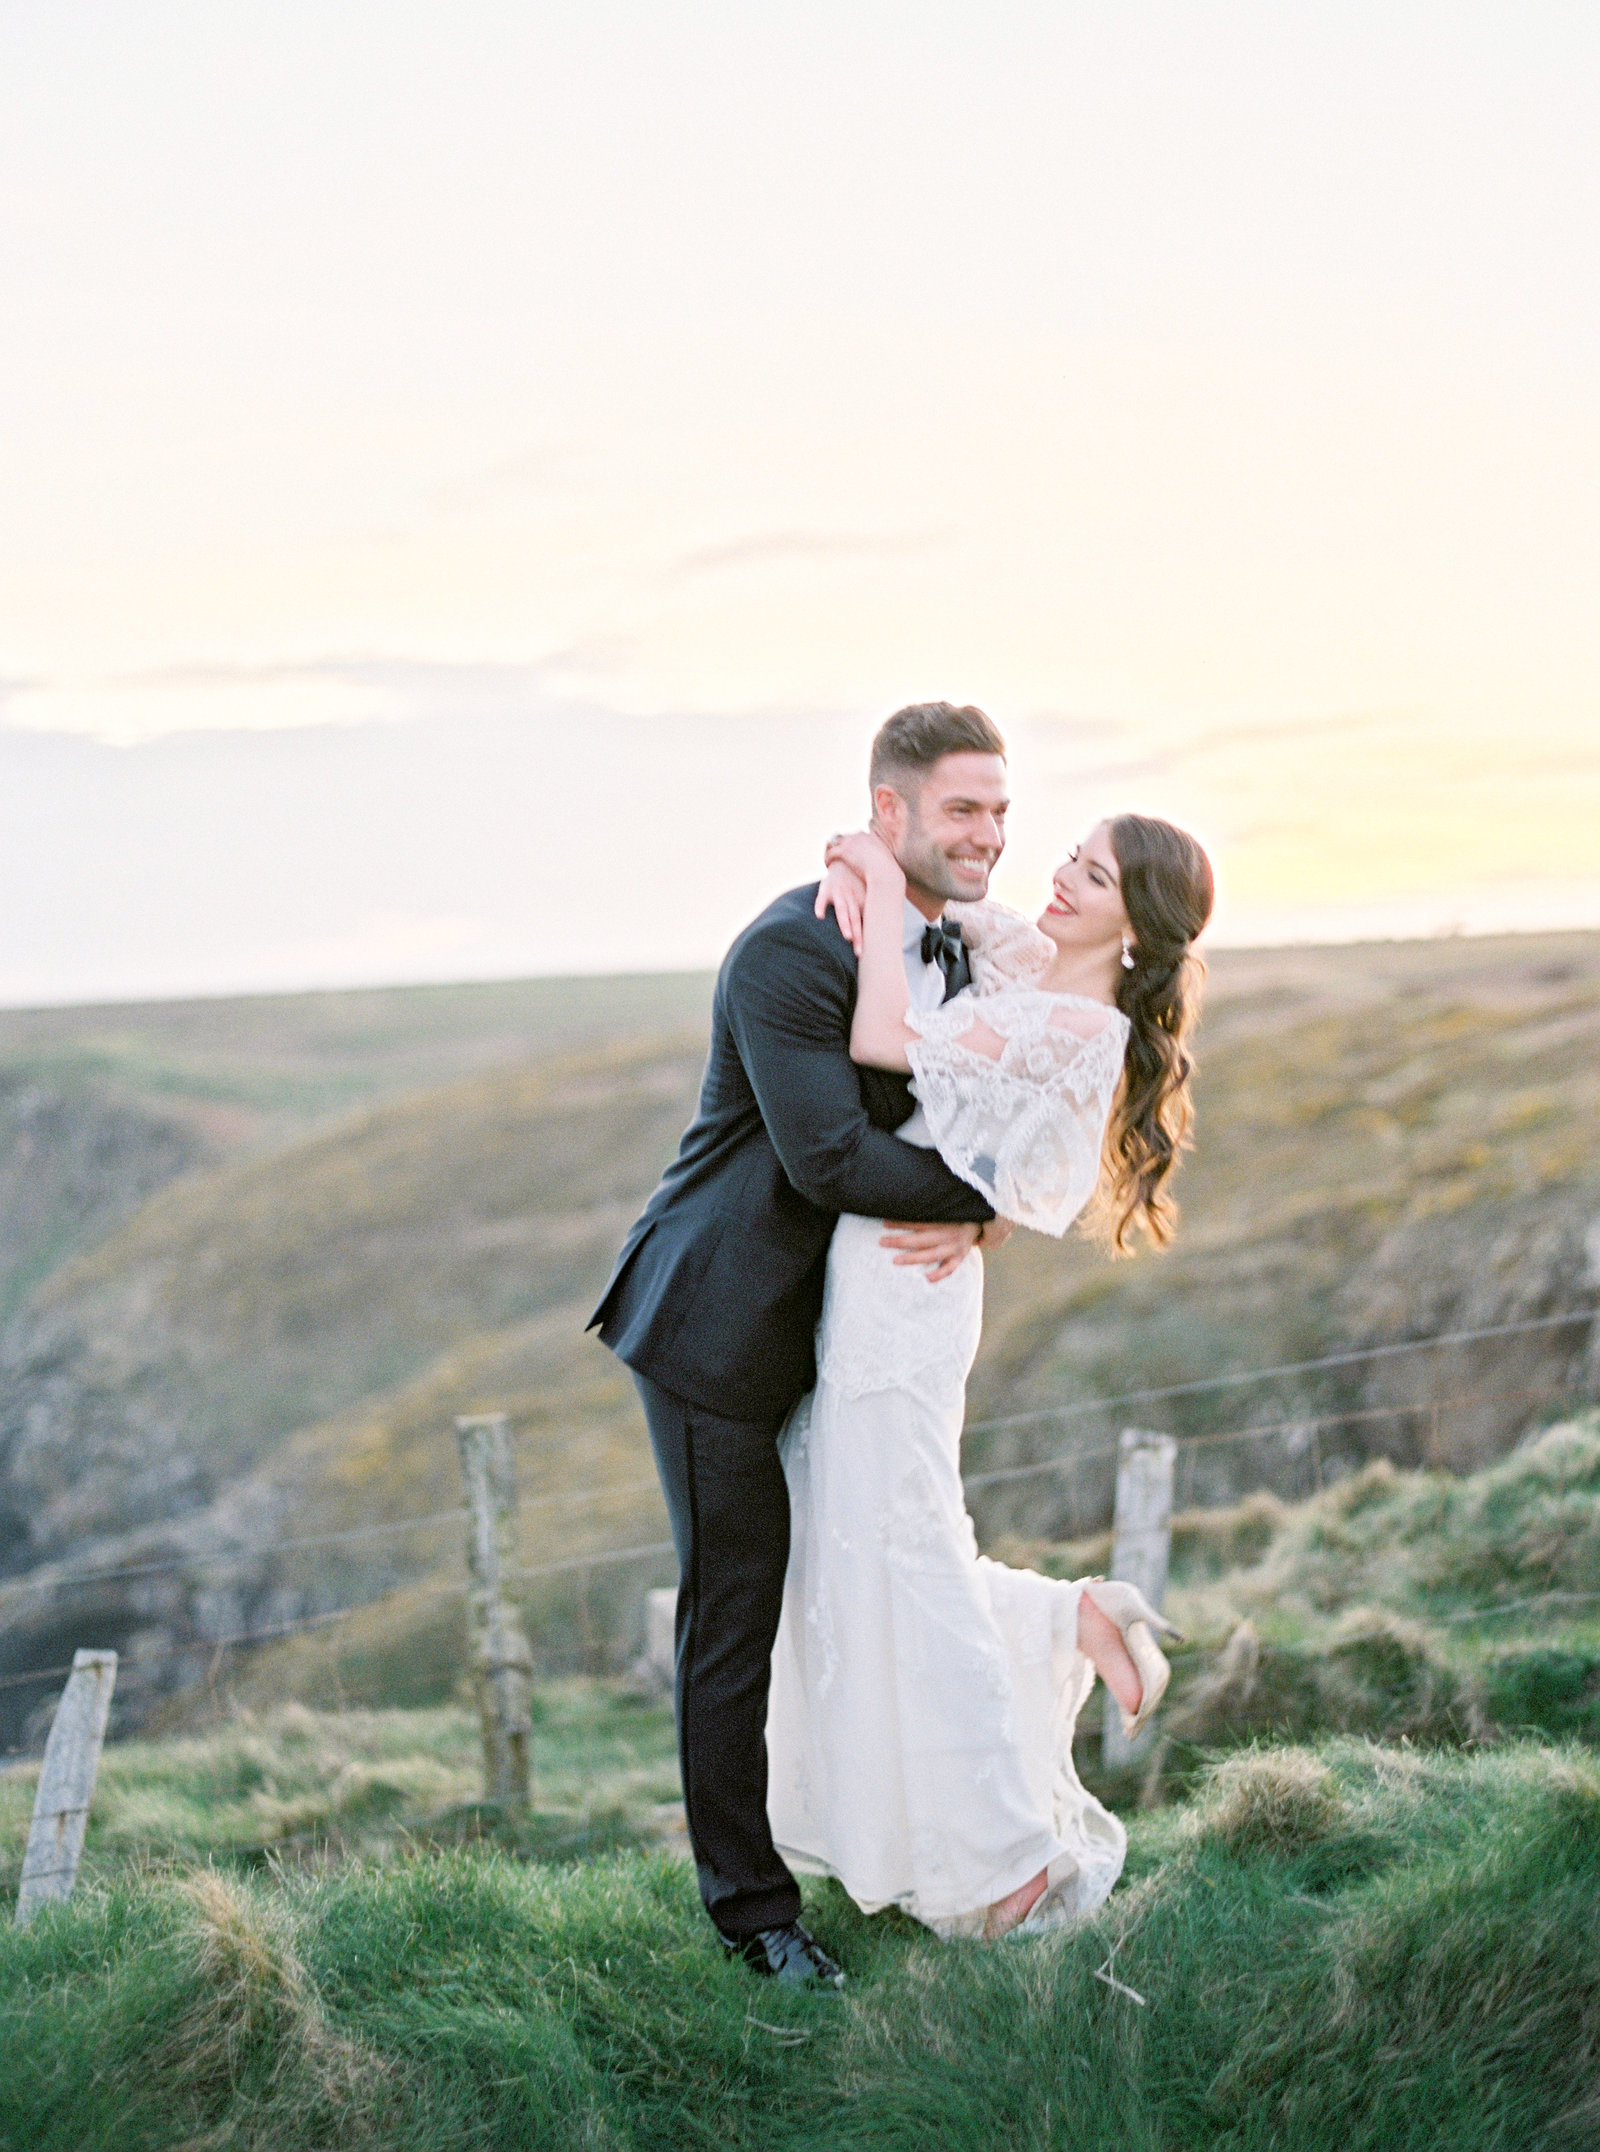 amelia_johnson_photography_for_atrendy_wedding_ireland00483